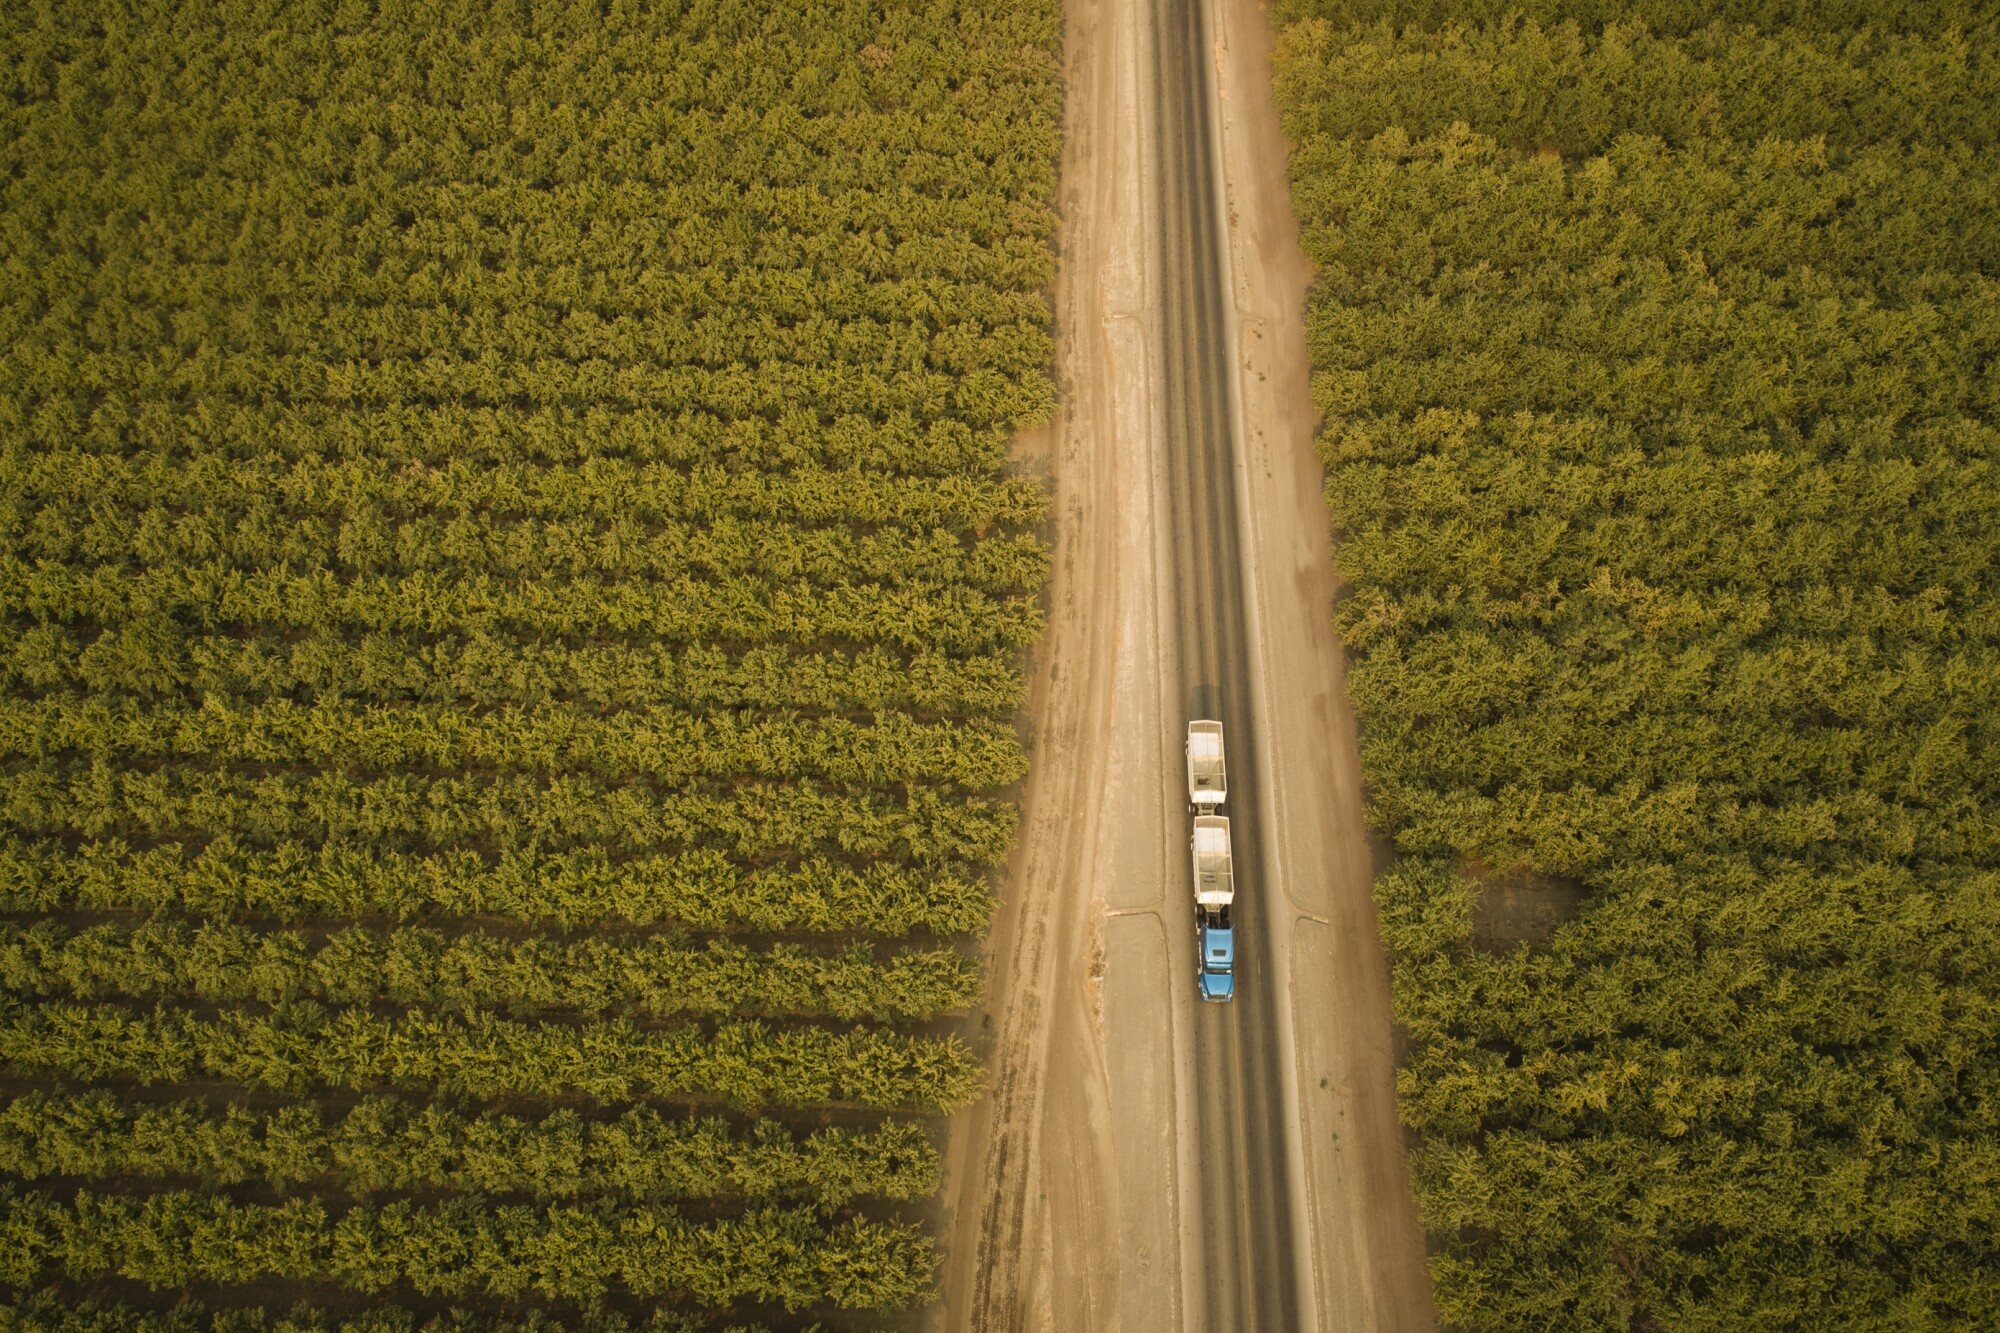 A truck rolls through nut trees almost ready for harvest near Cantua Creek.